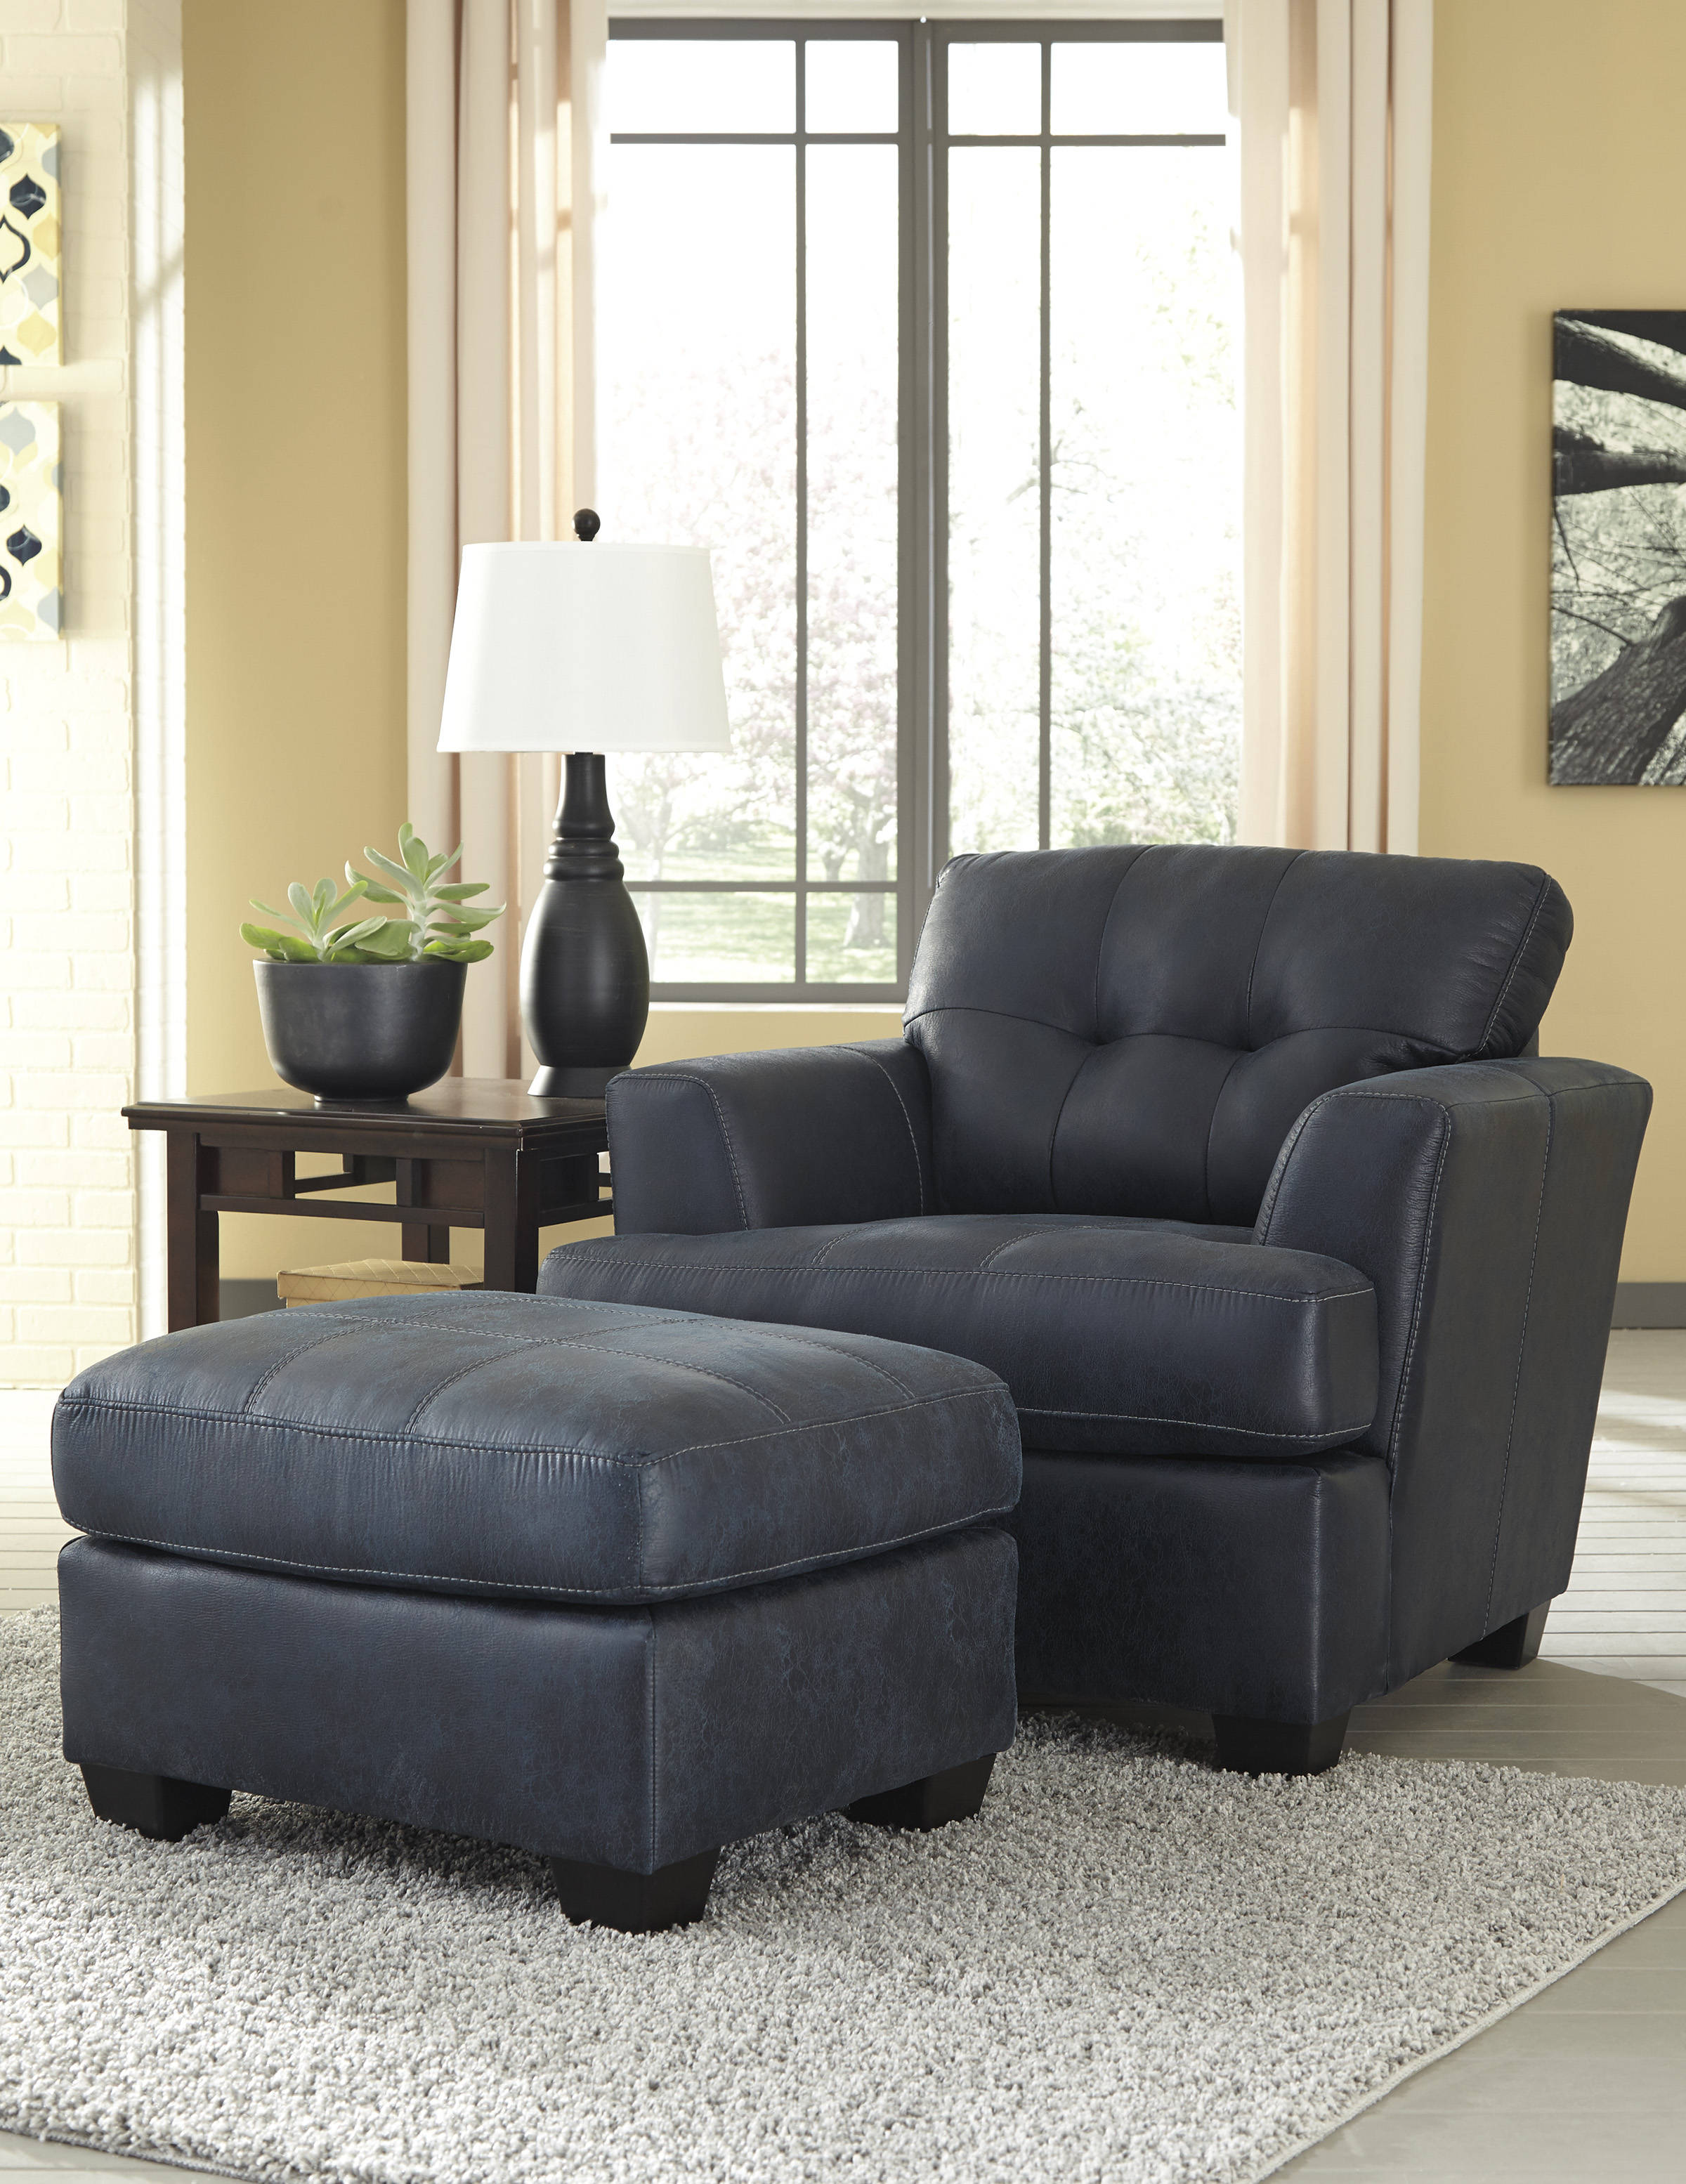 Ashley Furniture Inmon Navy Chair And Ottomans Set The Classy Home